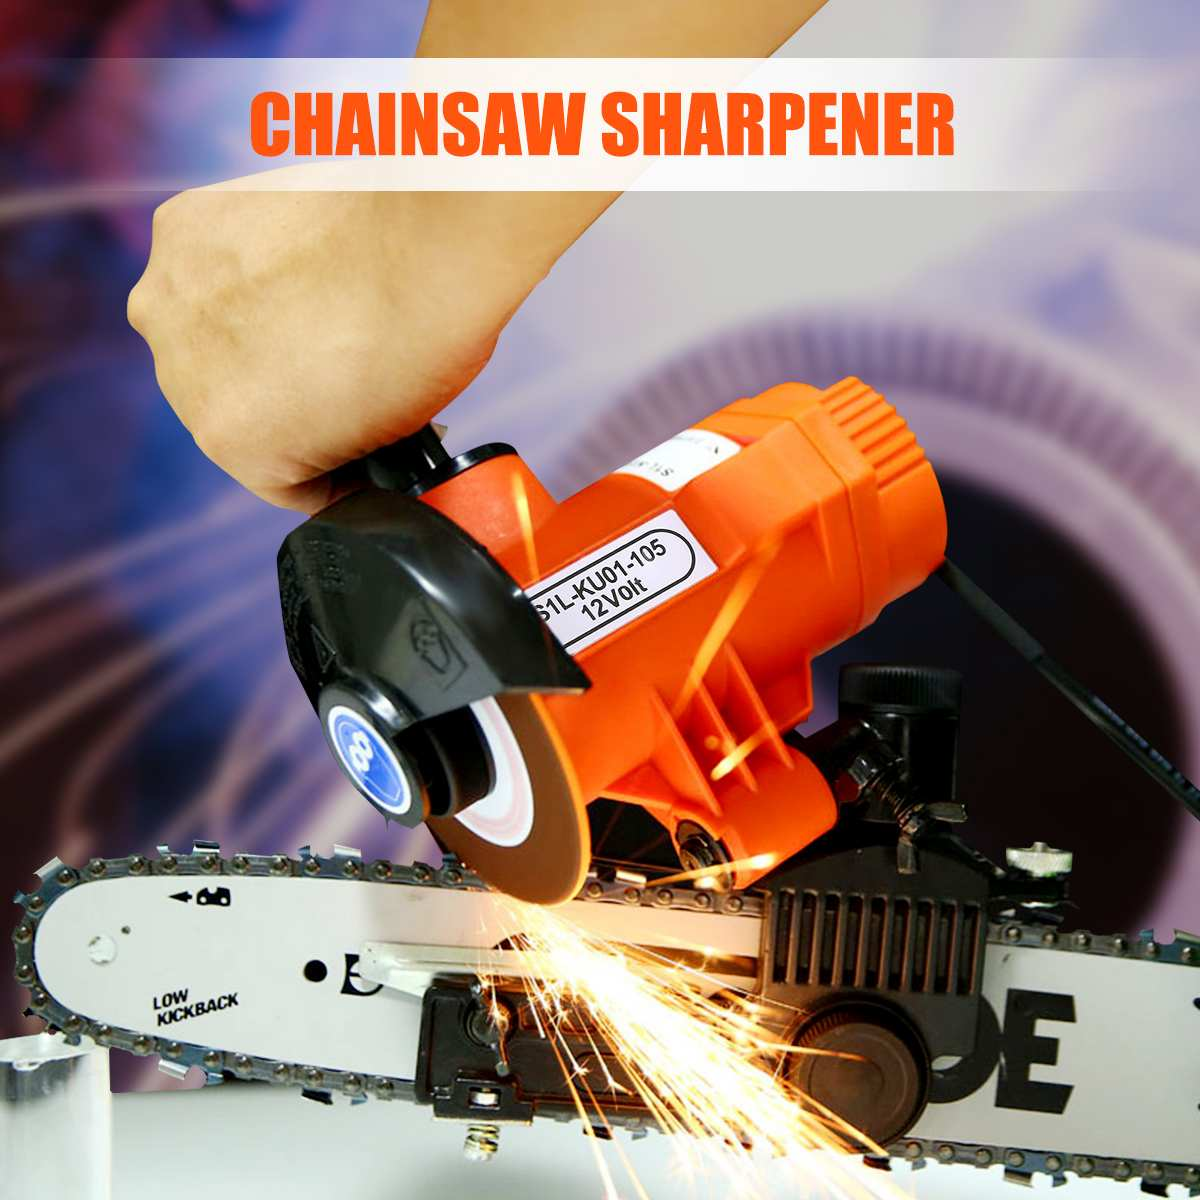 12V 85W Bar Mounted Electric Chainsaw Saw Blade Sharpener Grinder Set 4500RPM For Working Wood Power Tools